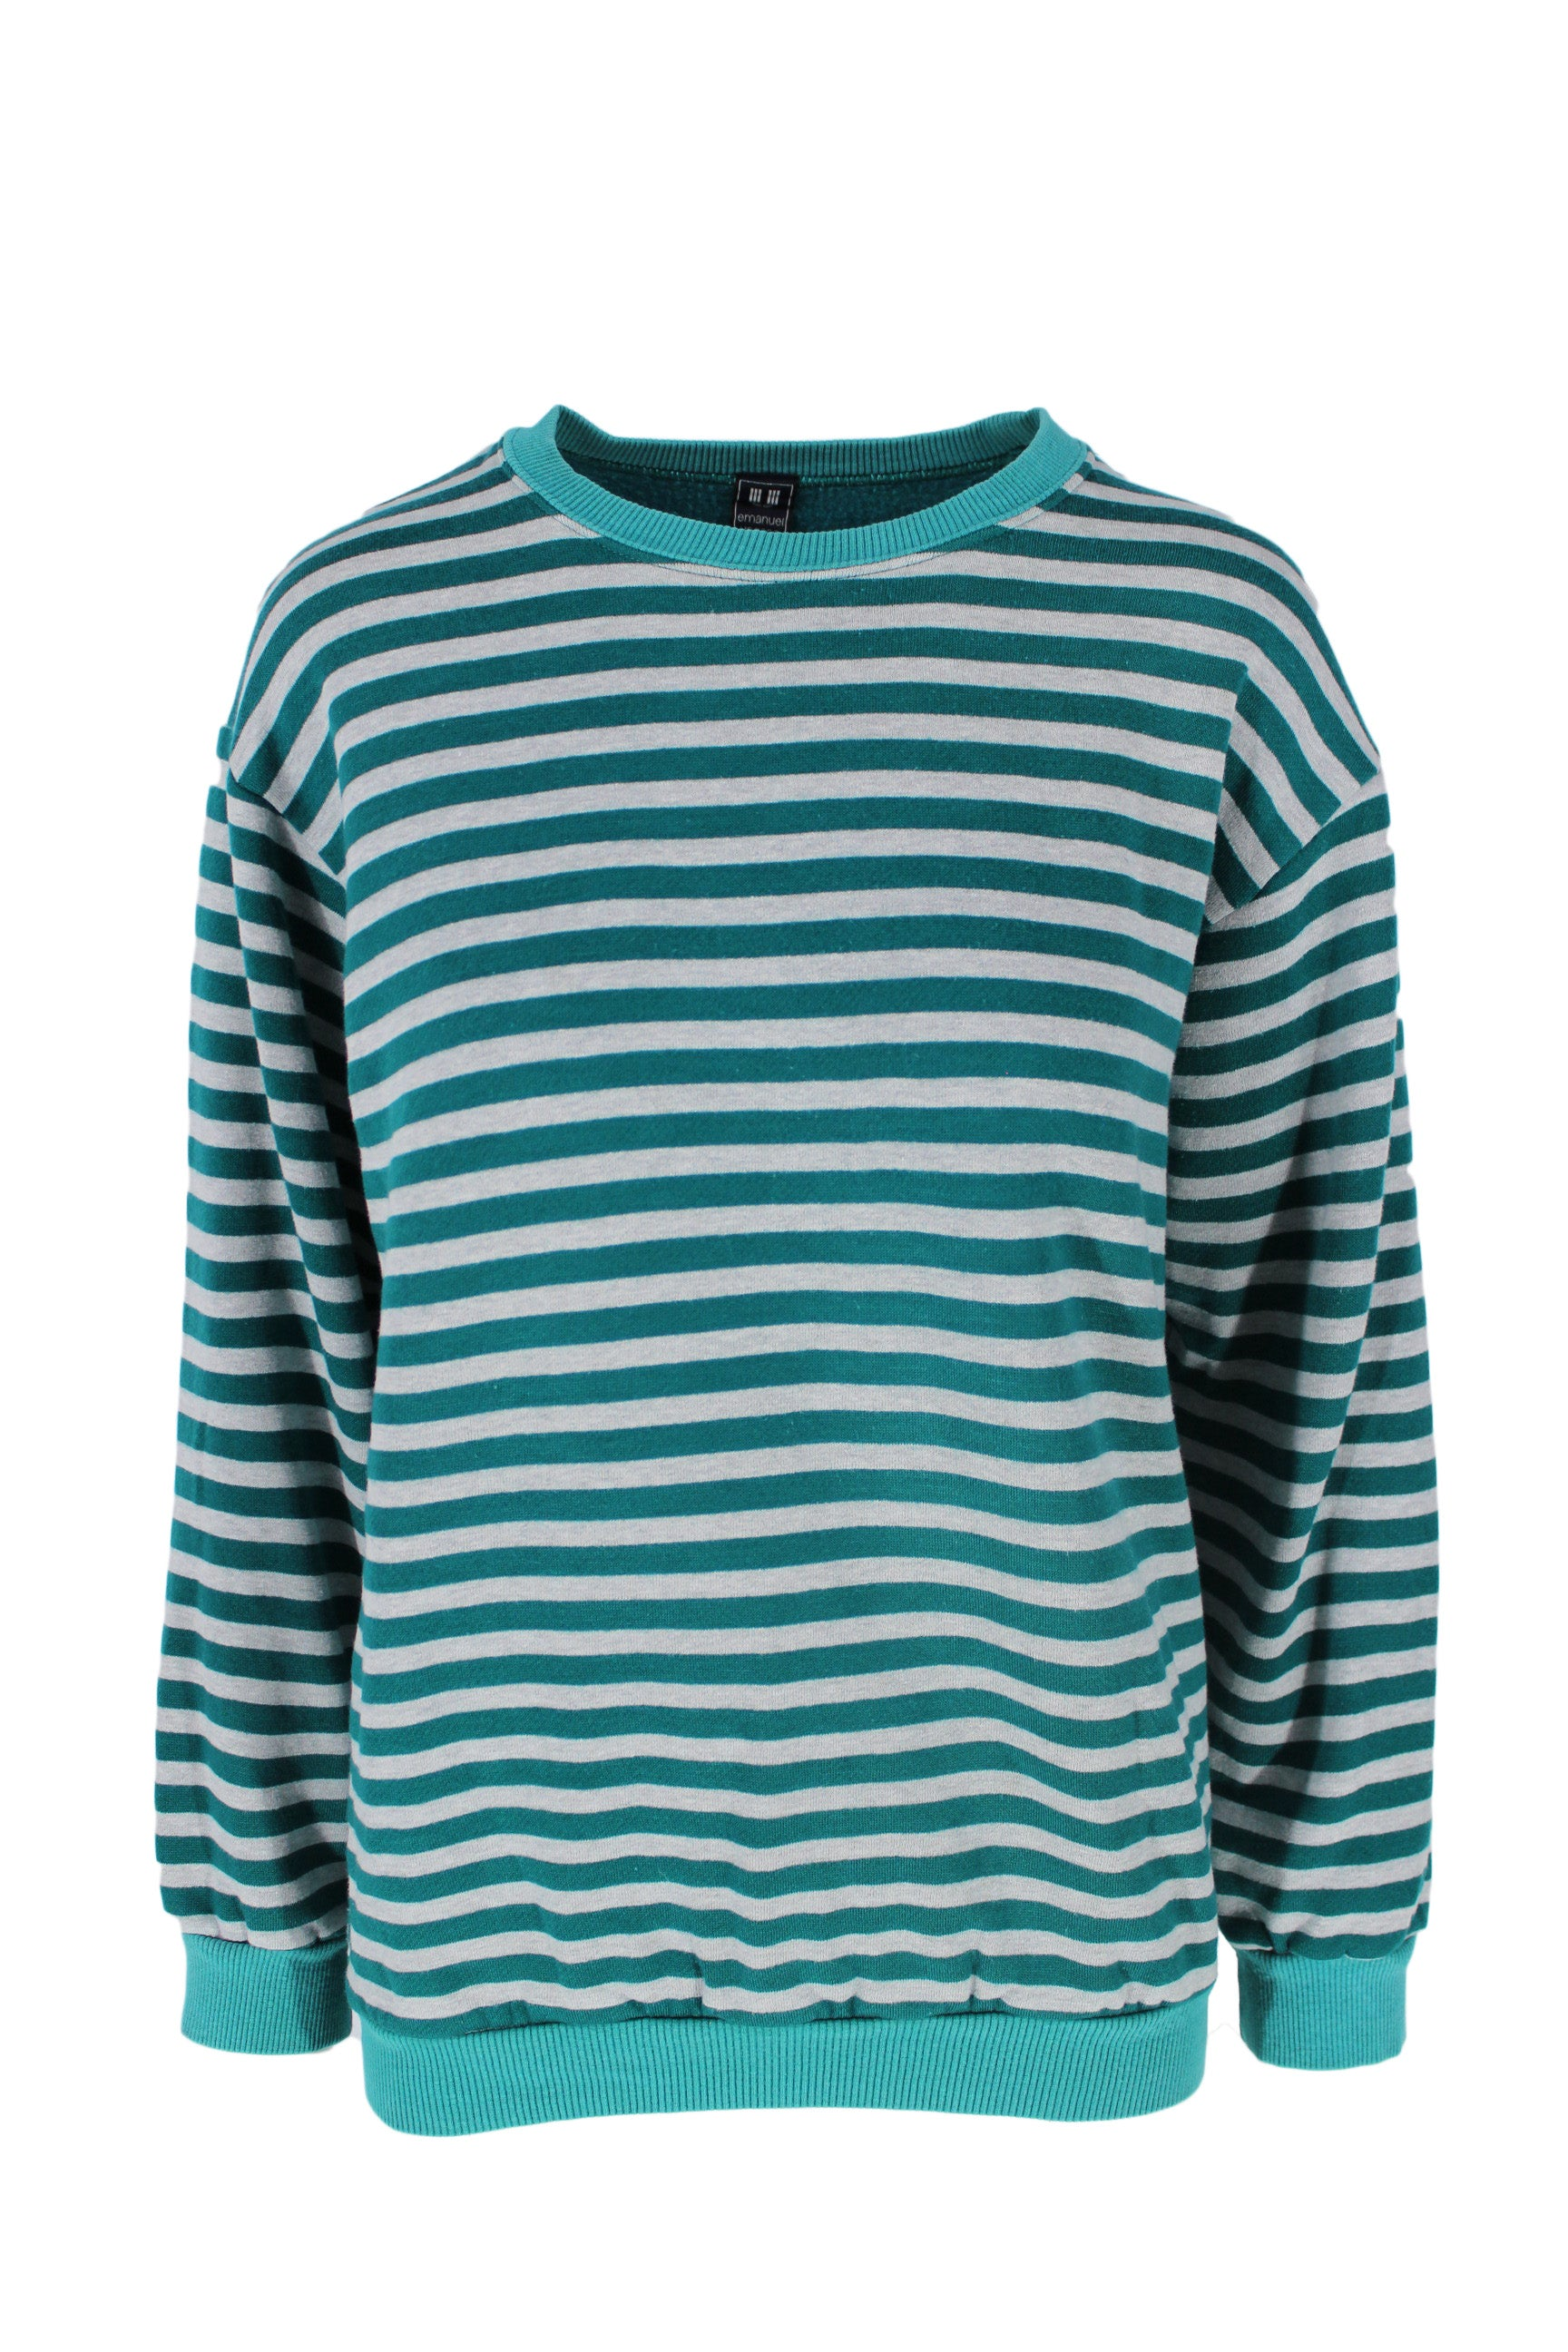 emanuel ungaro green & grey striped sweatshirt. features a round neckline, ribbed sleeve cuff, & hemline.